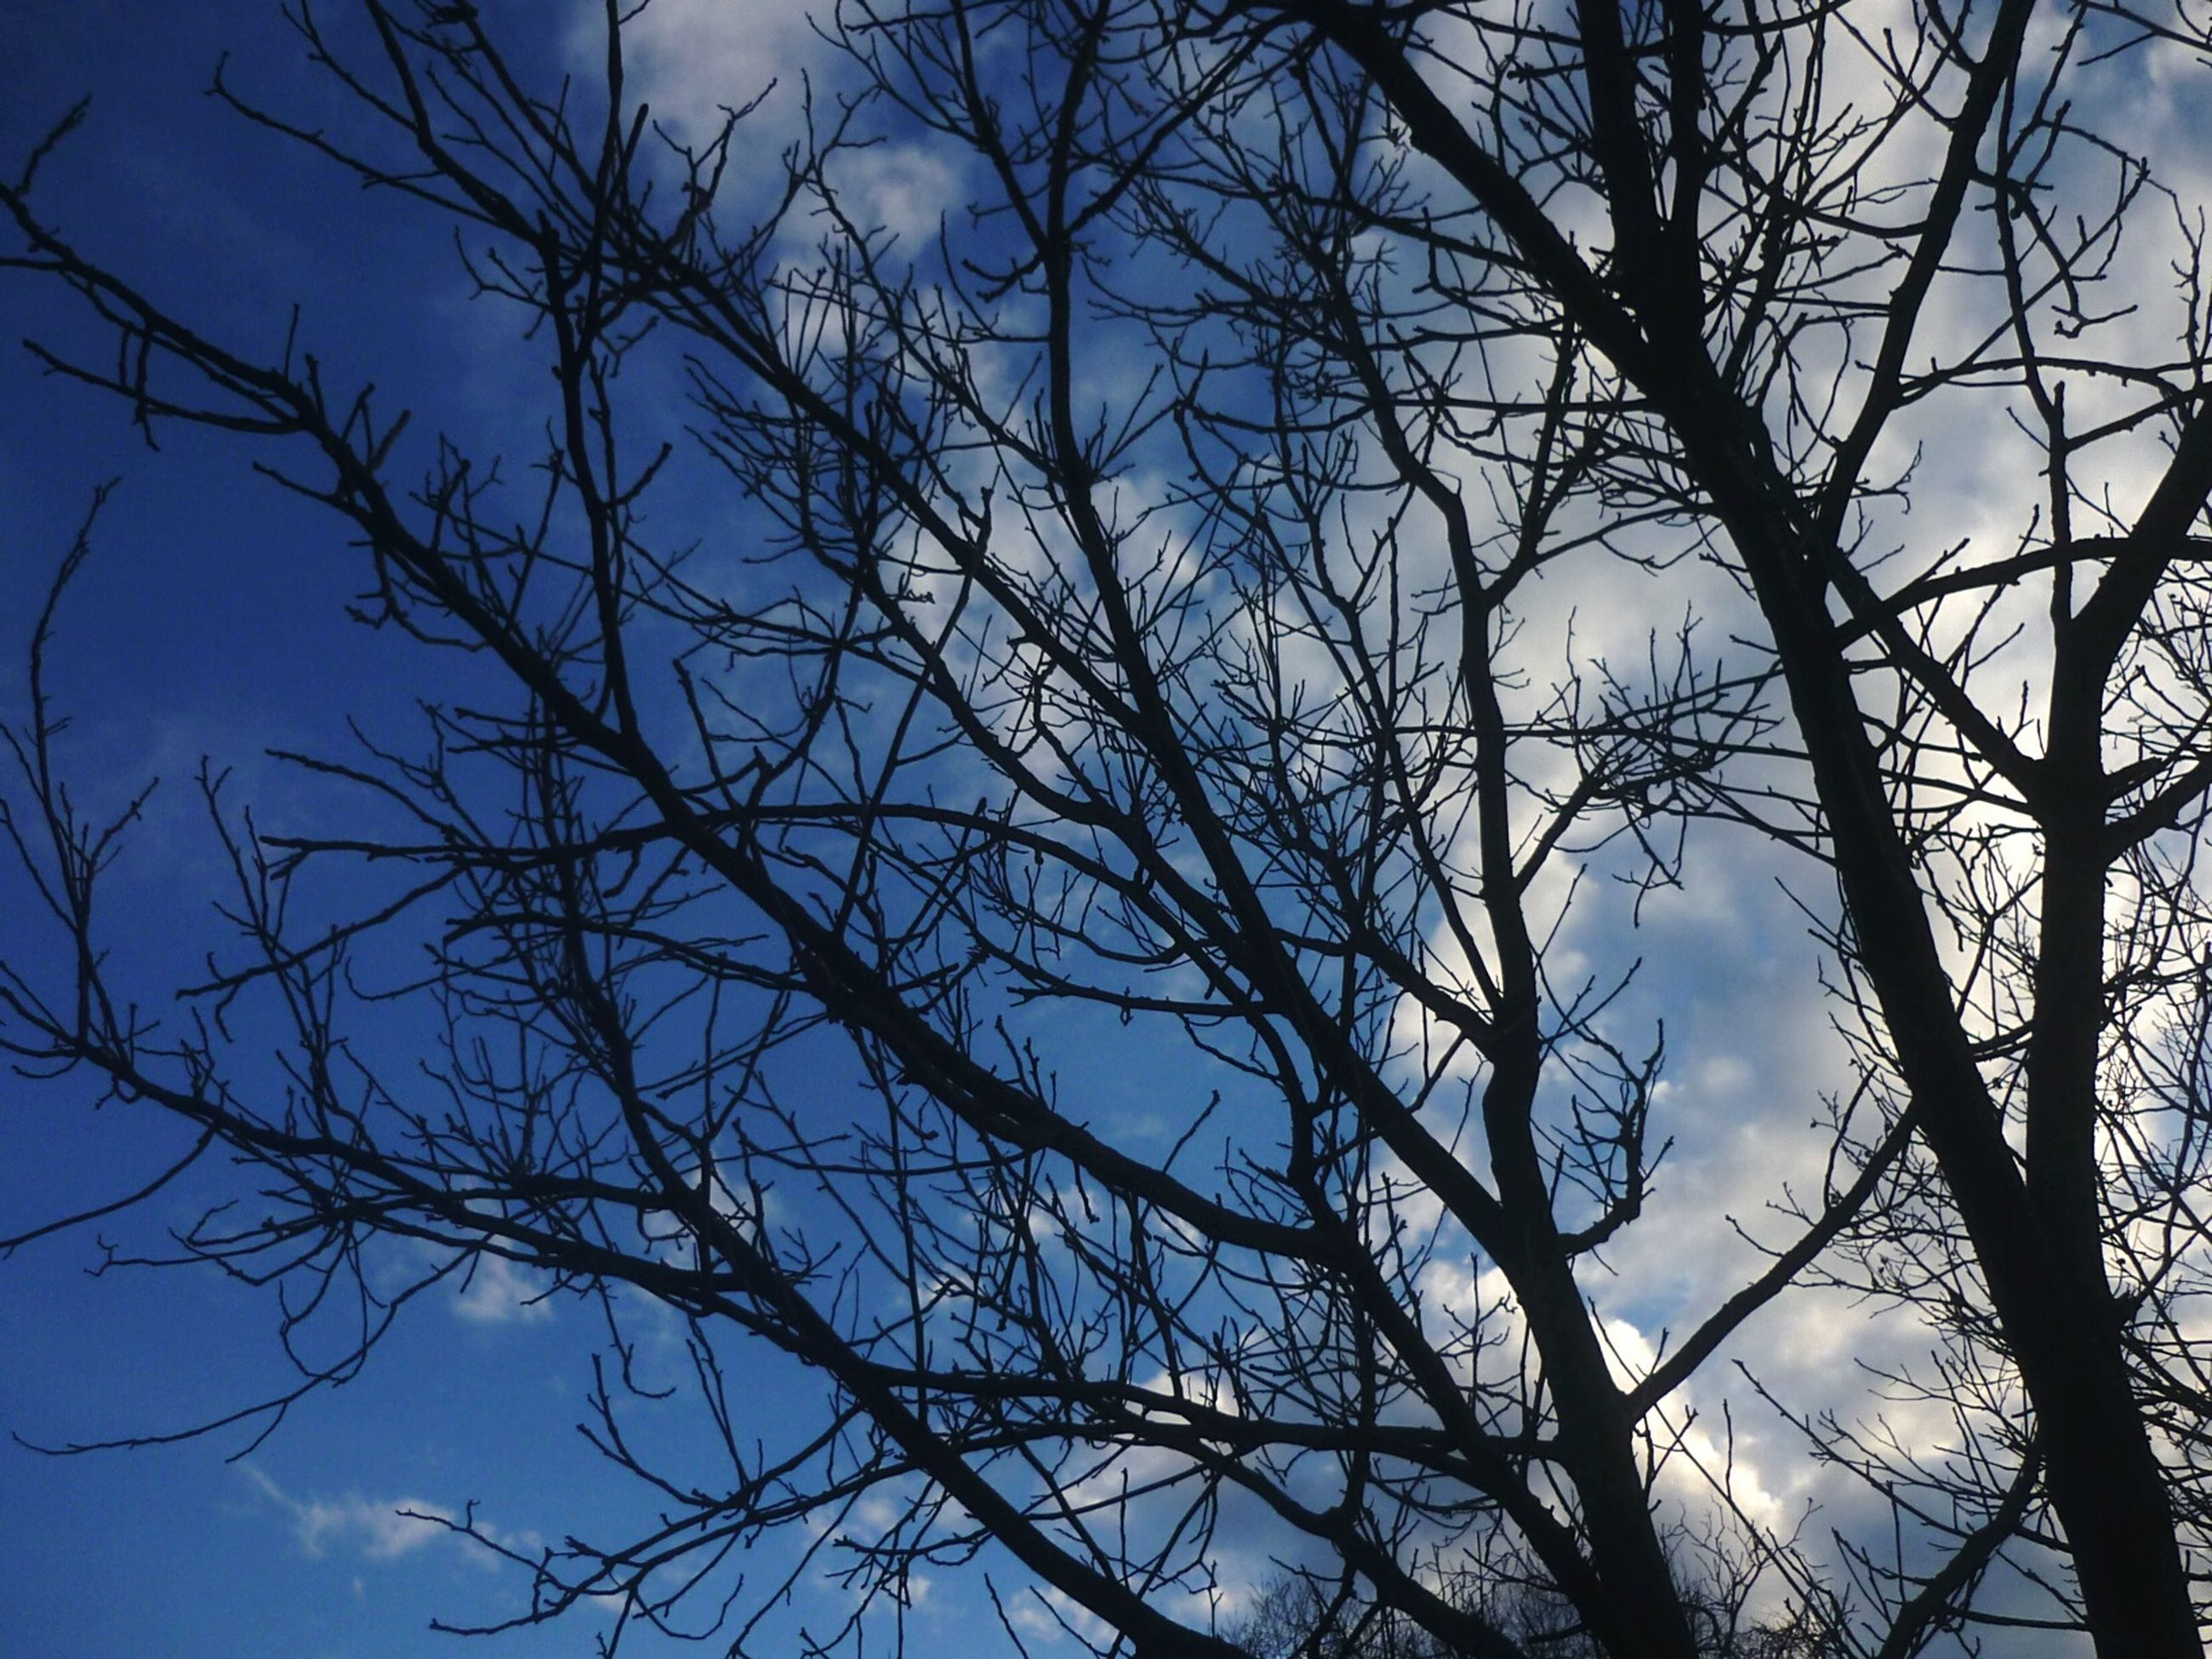 low angle view, bare tree, branch, tree, sky, tranquility, nature, silhouette, beauty in nature, blue, scenics, outdoors, day, no people, clear sky, growth, tranquil scene, cloud - sky, tree trunk, high section